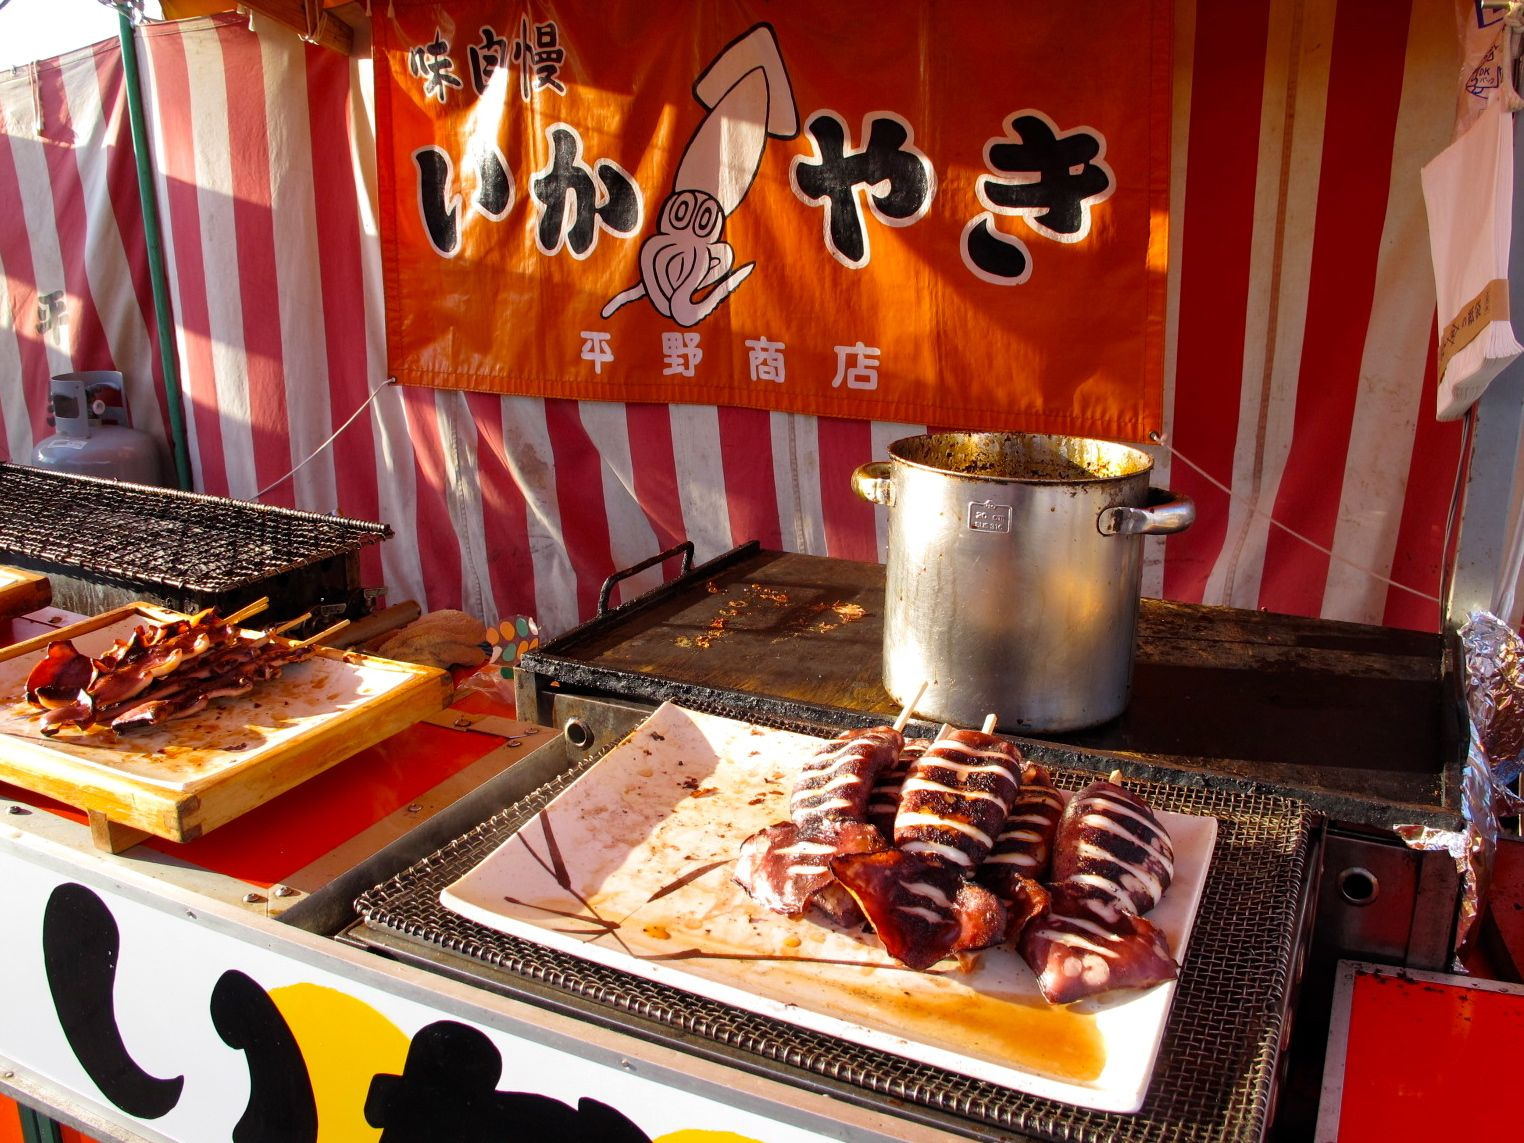 Japanese Cuisine Food Truck Travel Photos Japanese Street Food Spontaneous Tomato